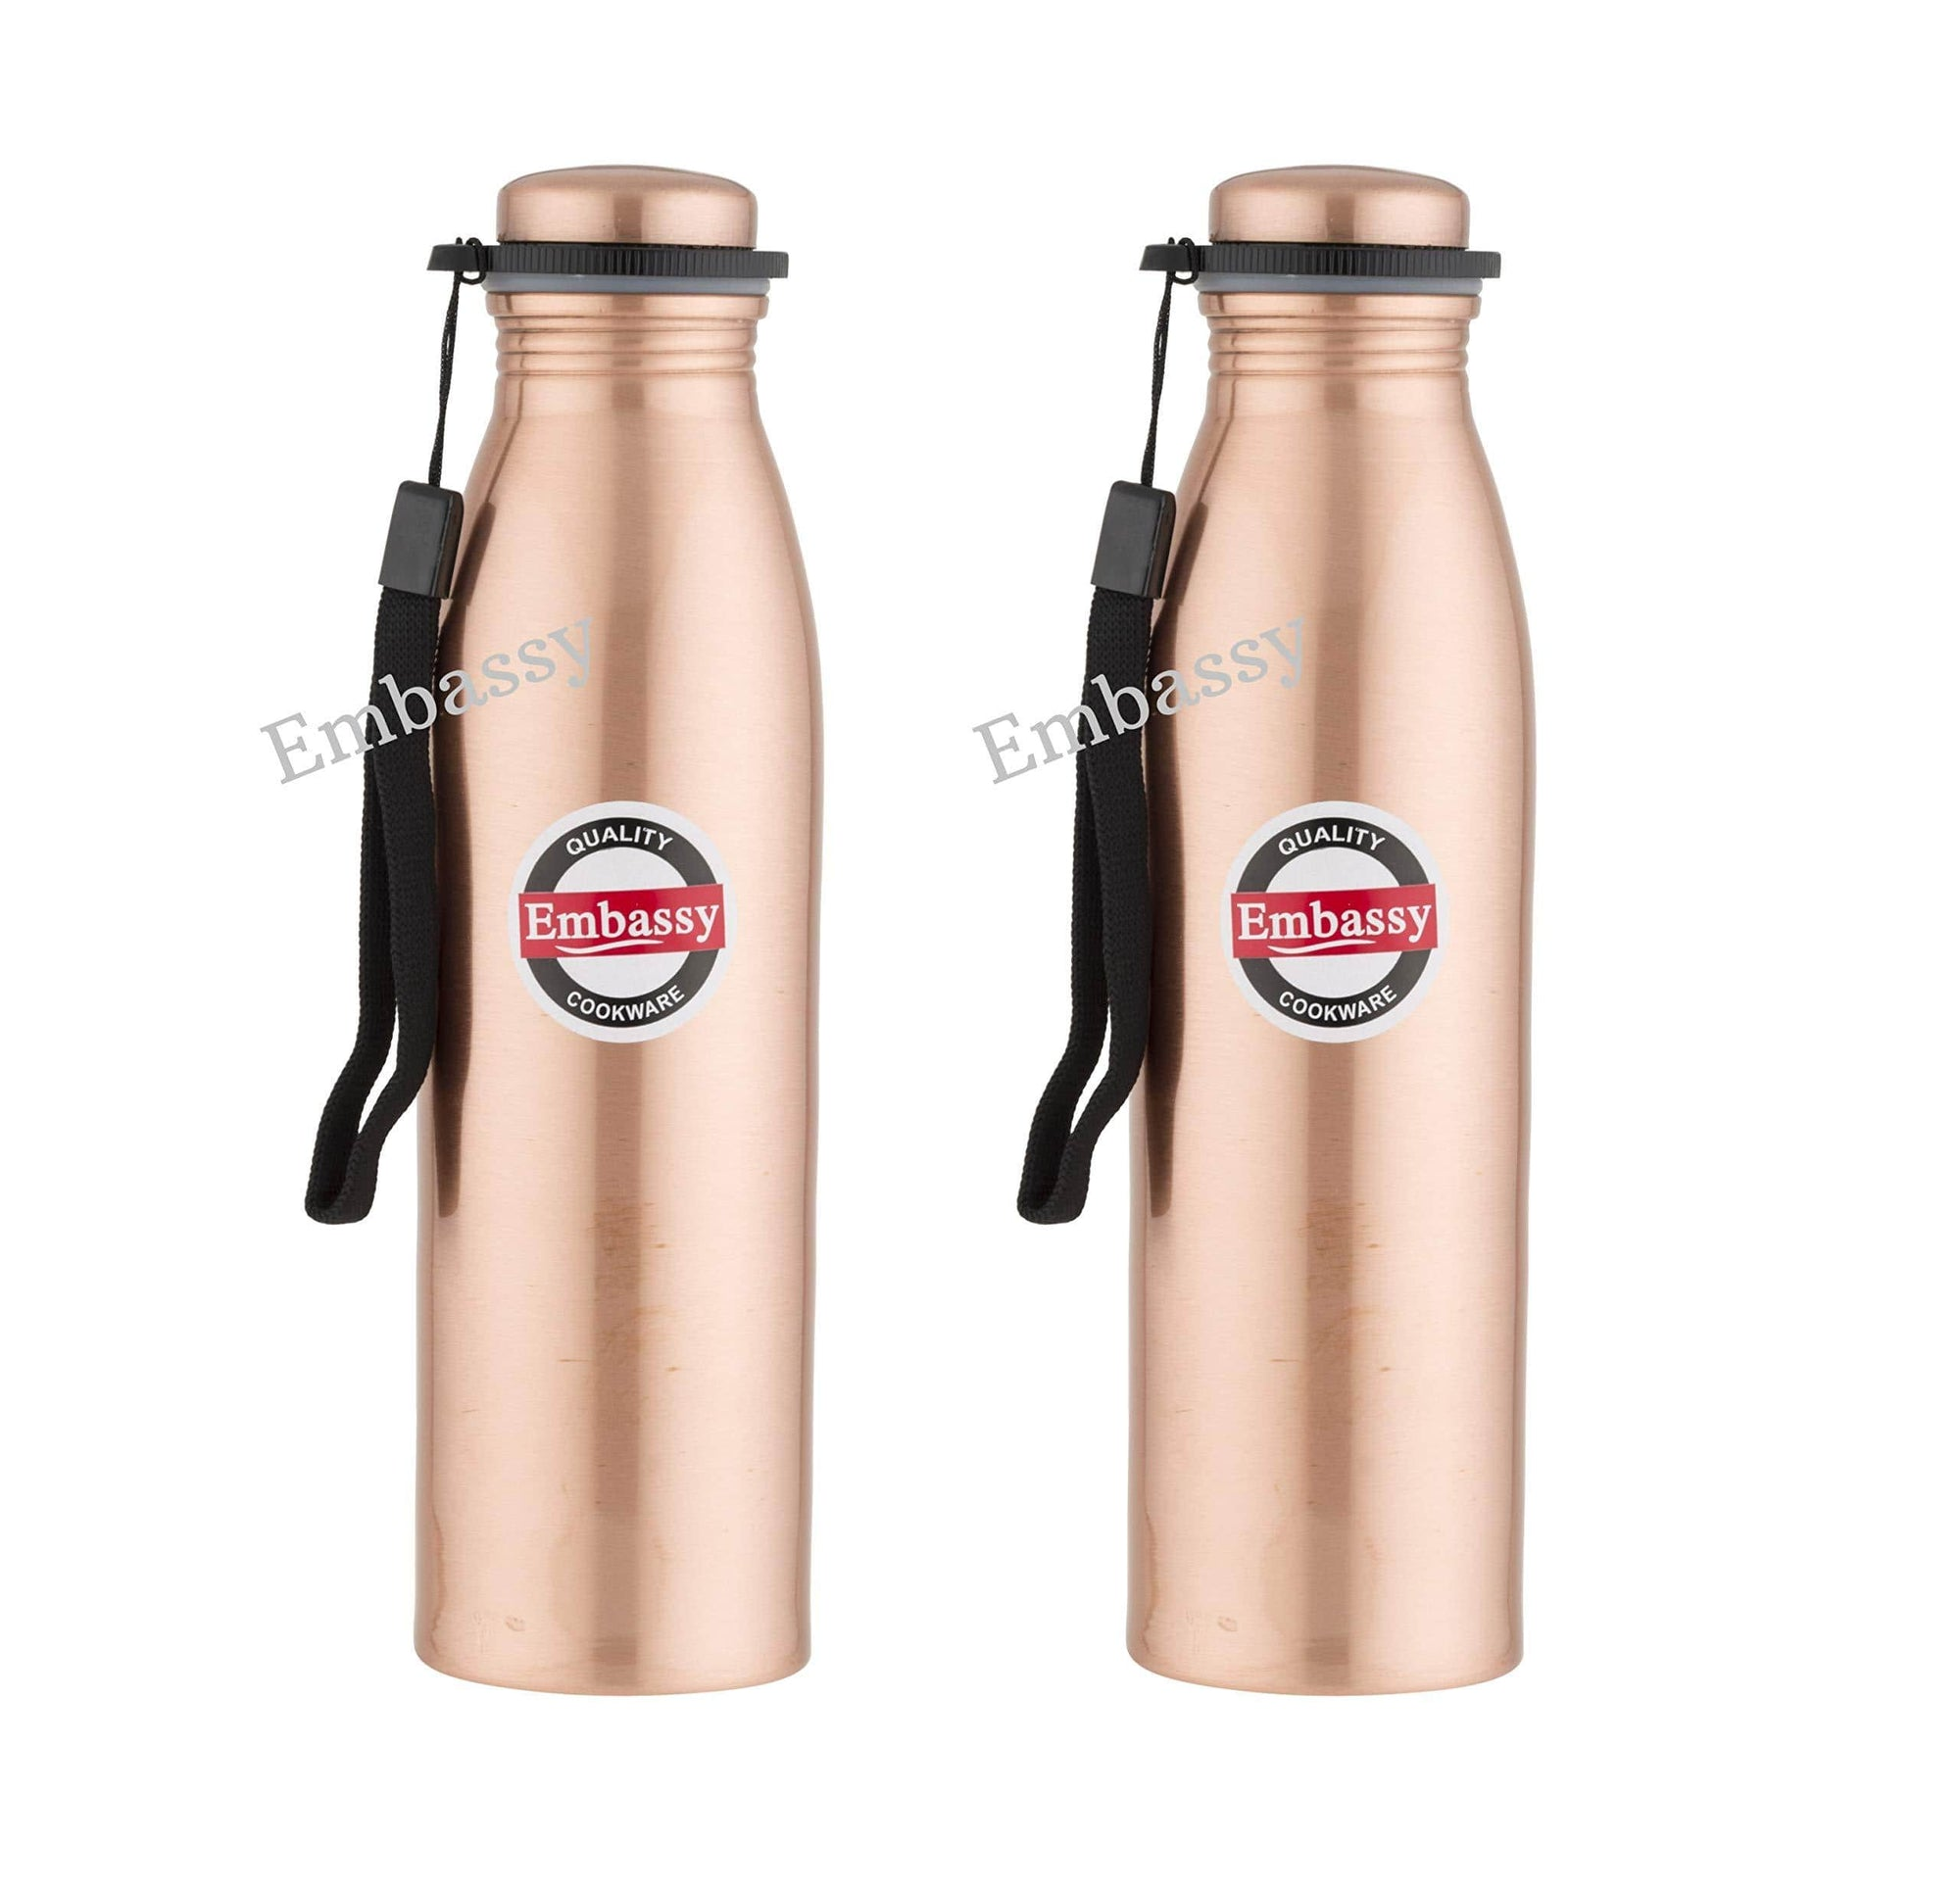 Embassy Premium Copper Water Bottle, Plain, 600 ml, Pack of 2 - Leak-Proof, Jointless and Pure Copper - KITCHEN MART